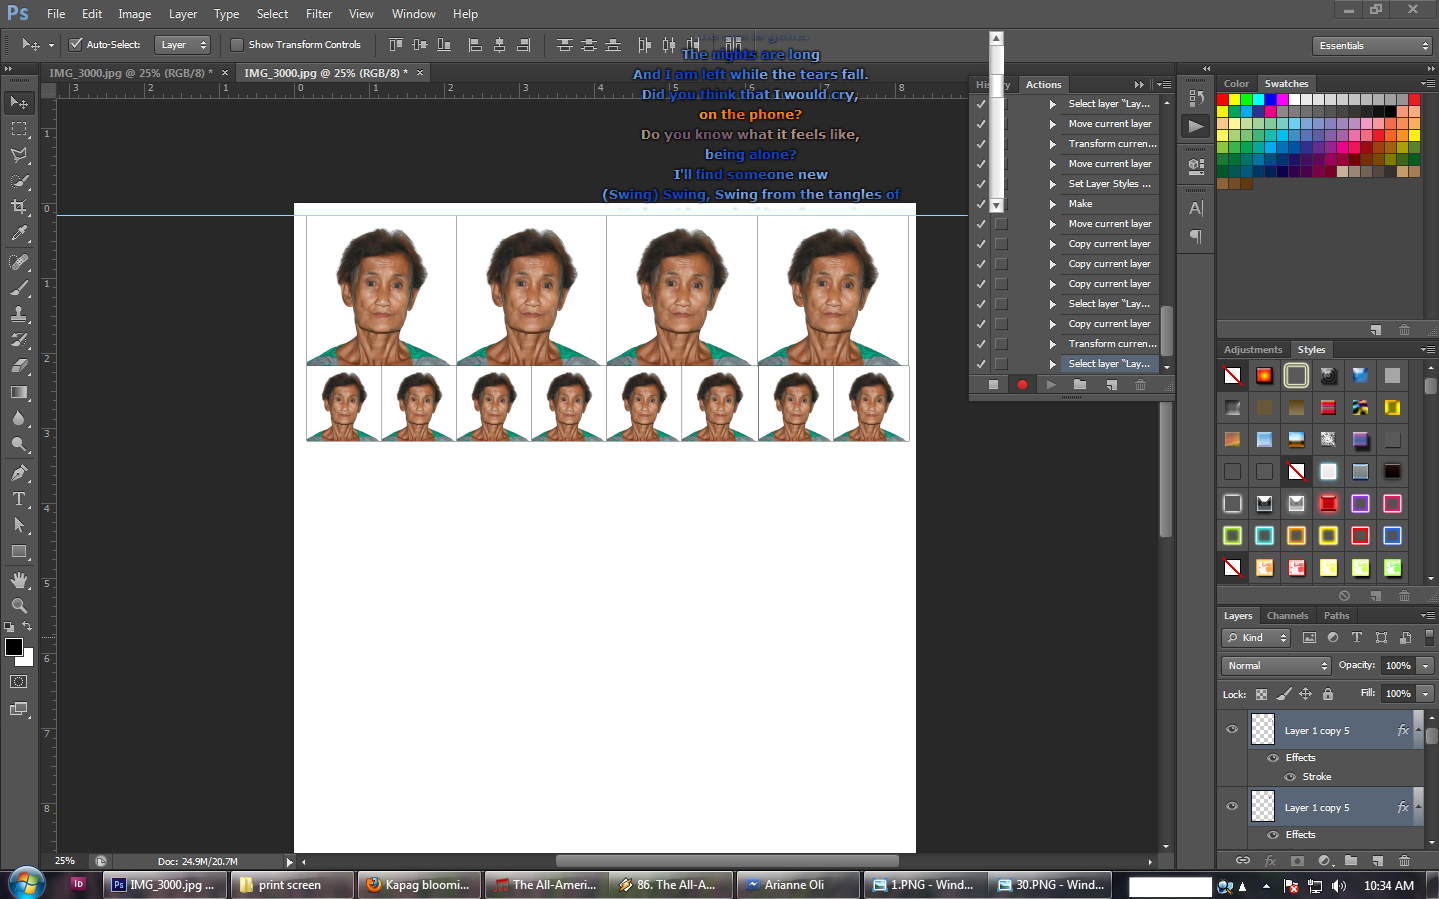 How To Make An Id Picture 2x2 1x1 In Adobe Photoshop Cs 6 For